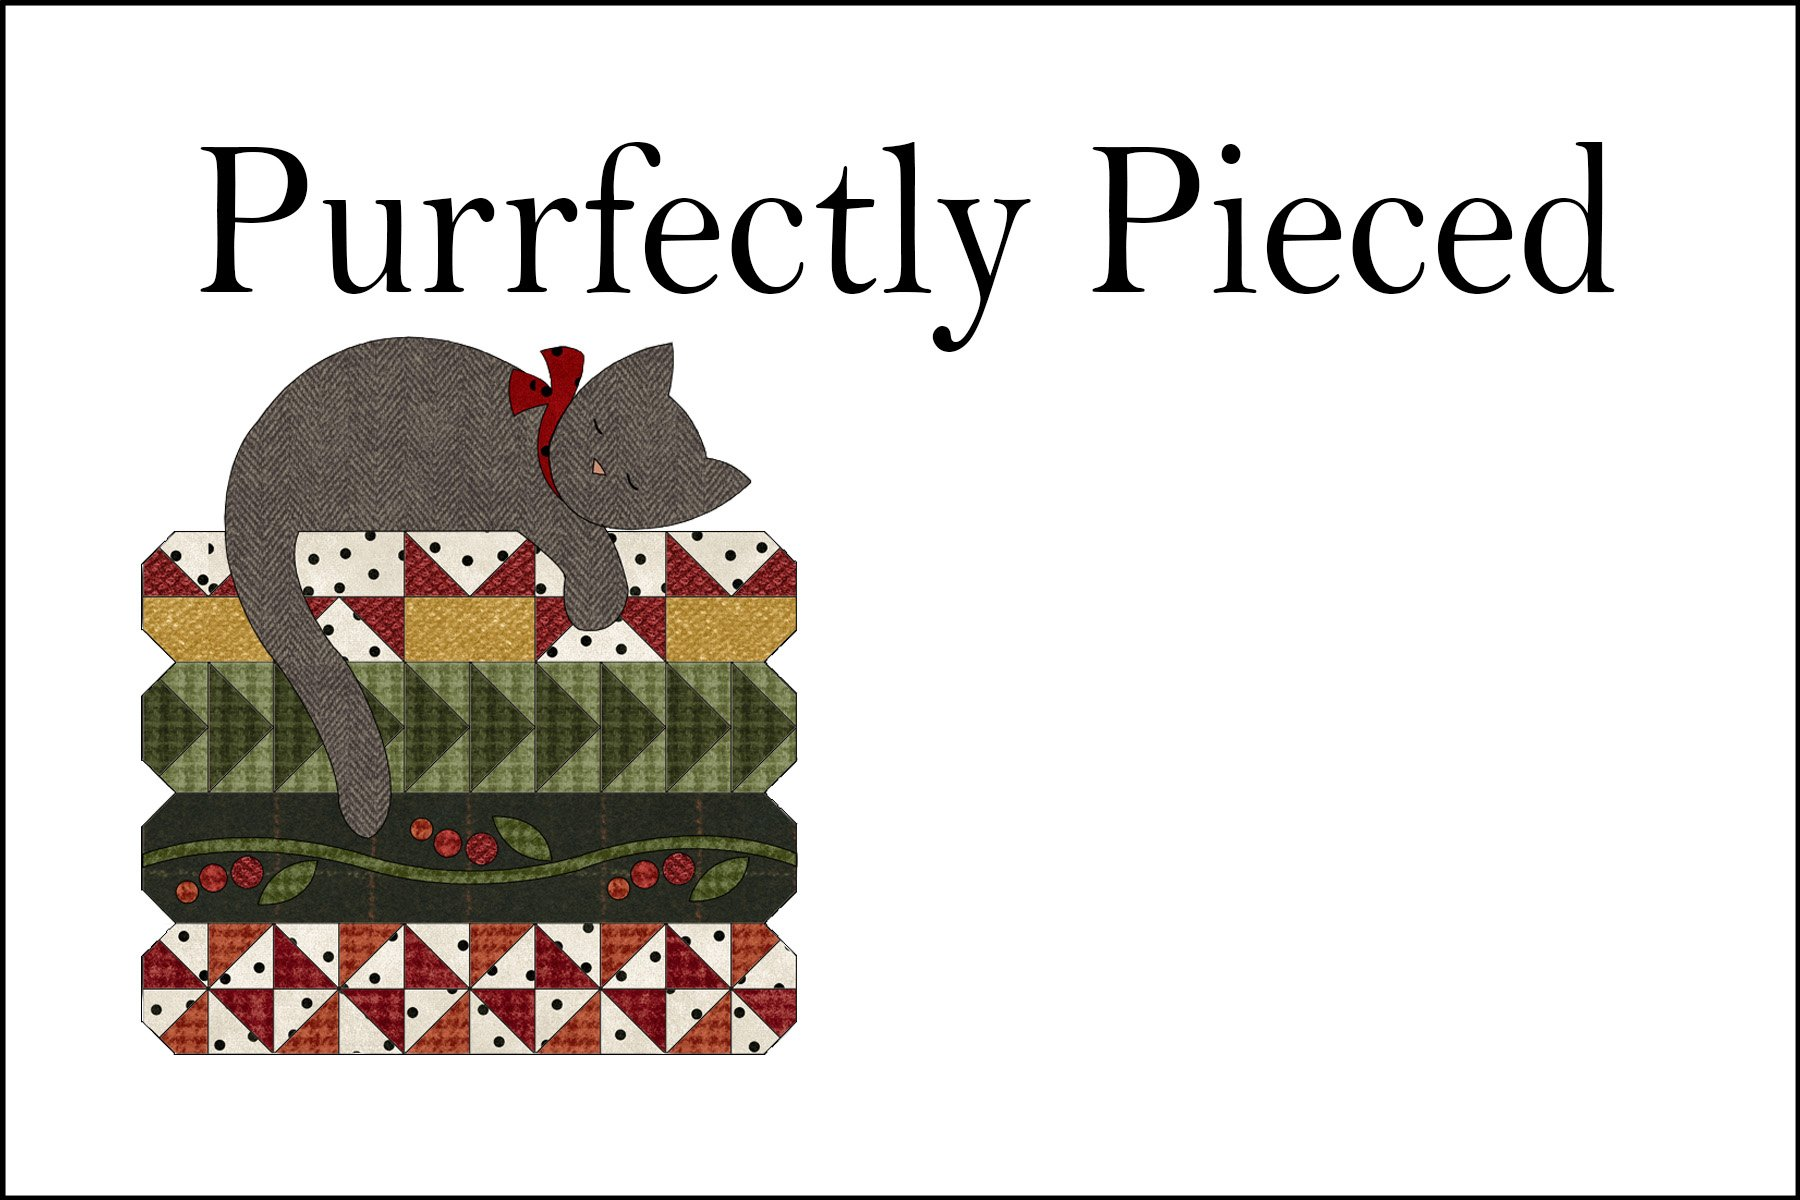 QL1502 Purrfectly Pieced Quilt Label